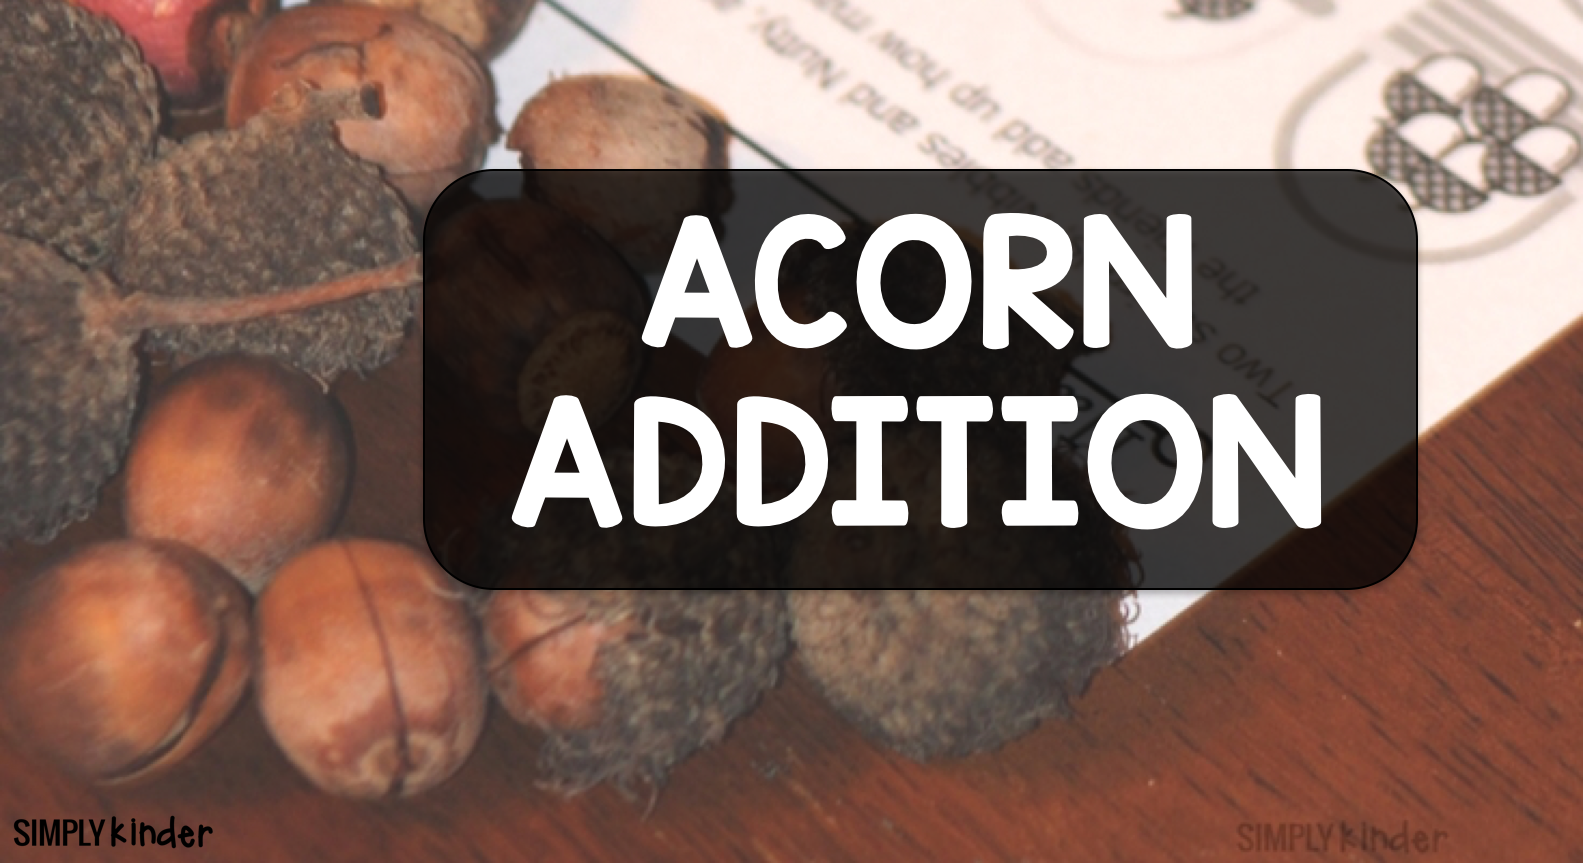 Acorn Addition